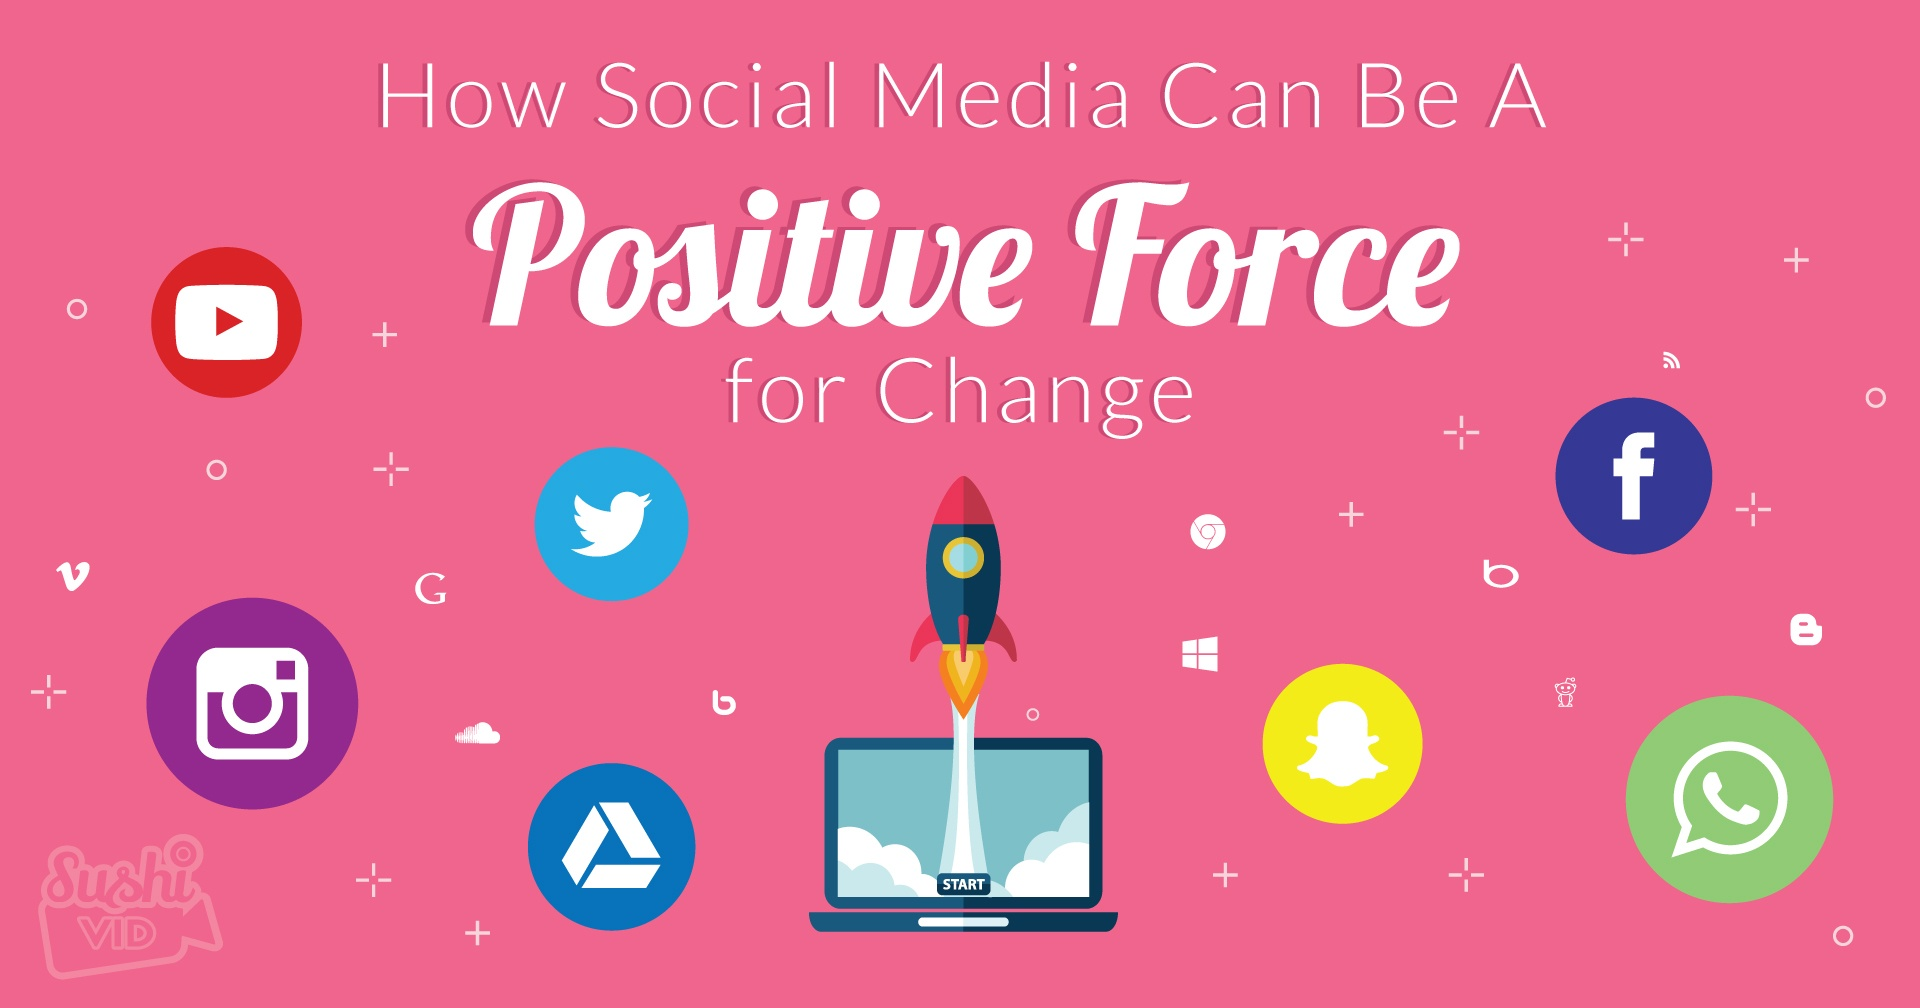 20151030 20  20how 20social 20media 20can 20be 20a 20positive 20force 20for 20change 20  20influencer 20marketing